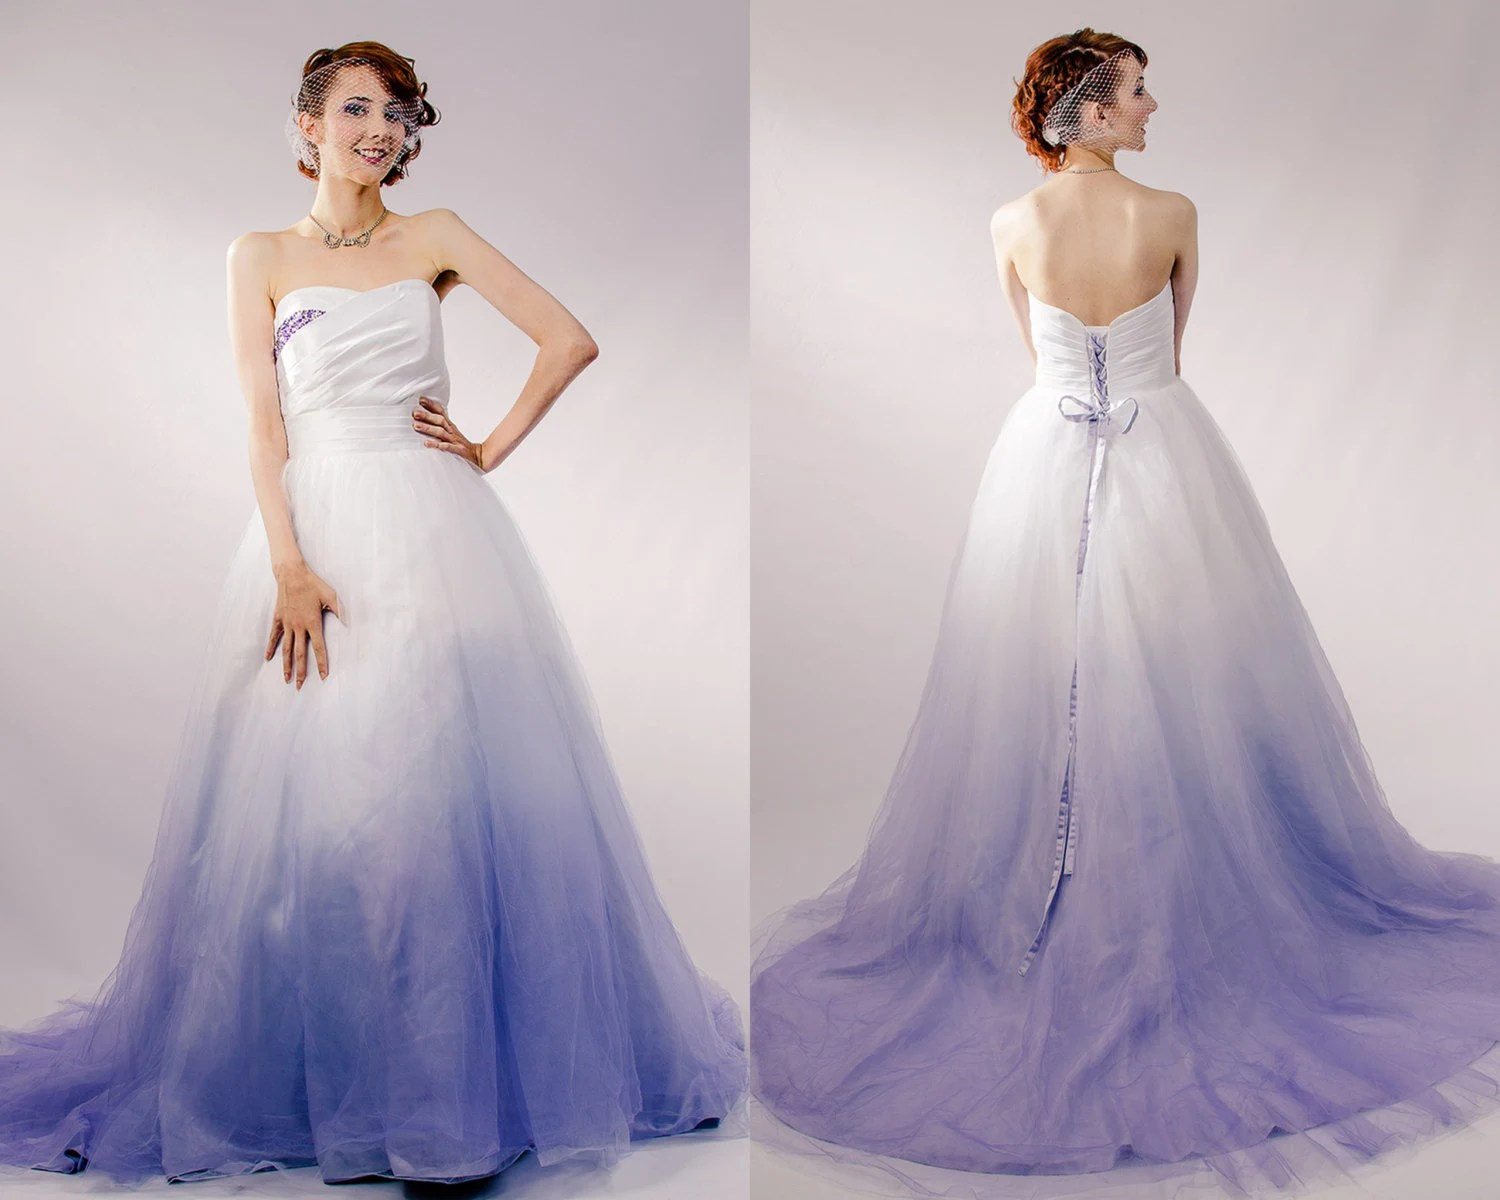 ombre wedding dress ombre wedding dress Dip Dyed Wedding Dress Purple Ombre Wedding Dress Couture Wedding Gown Colored Wedding Dress